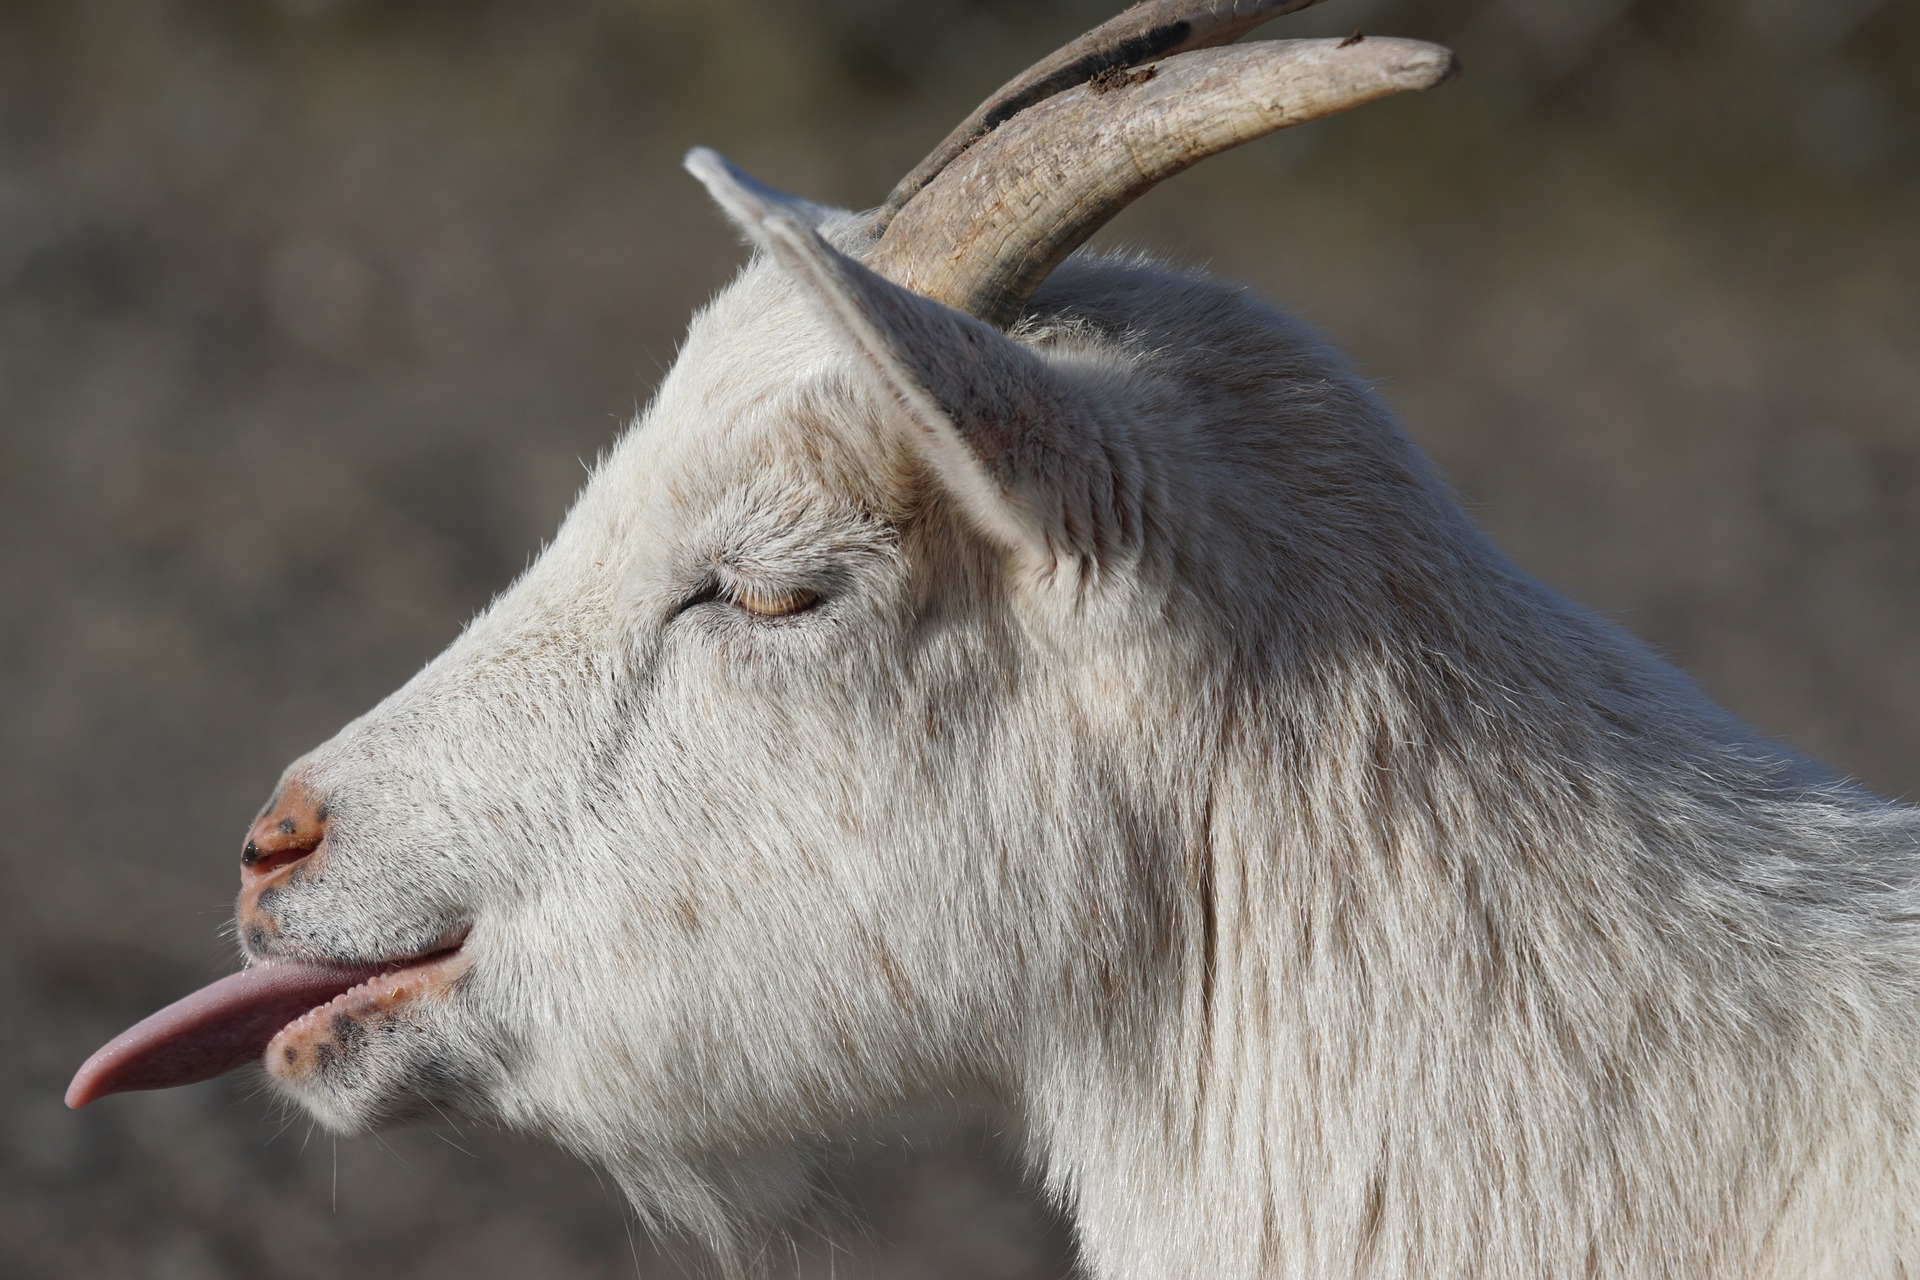 goat sticking out tongue